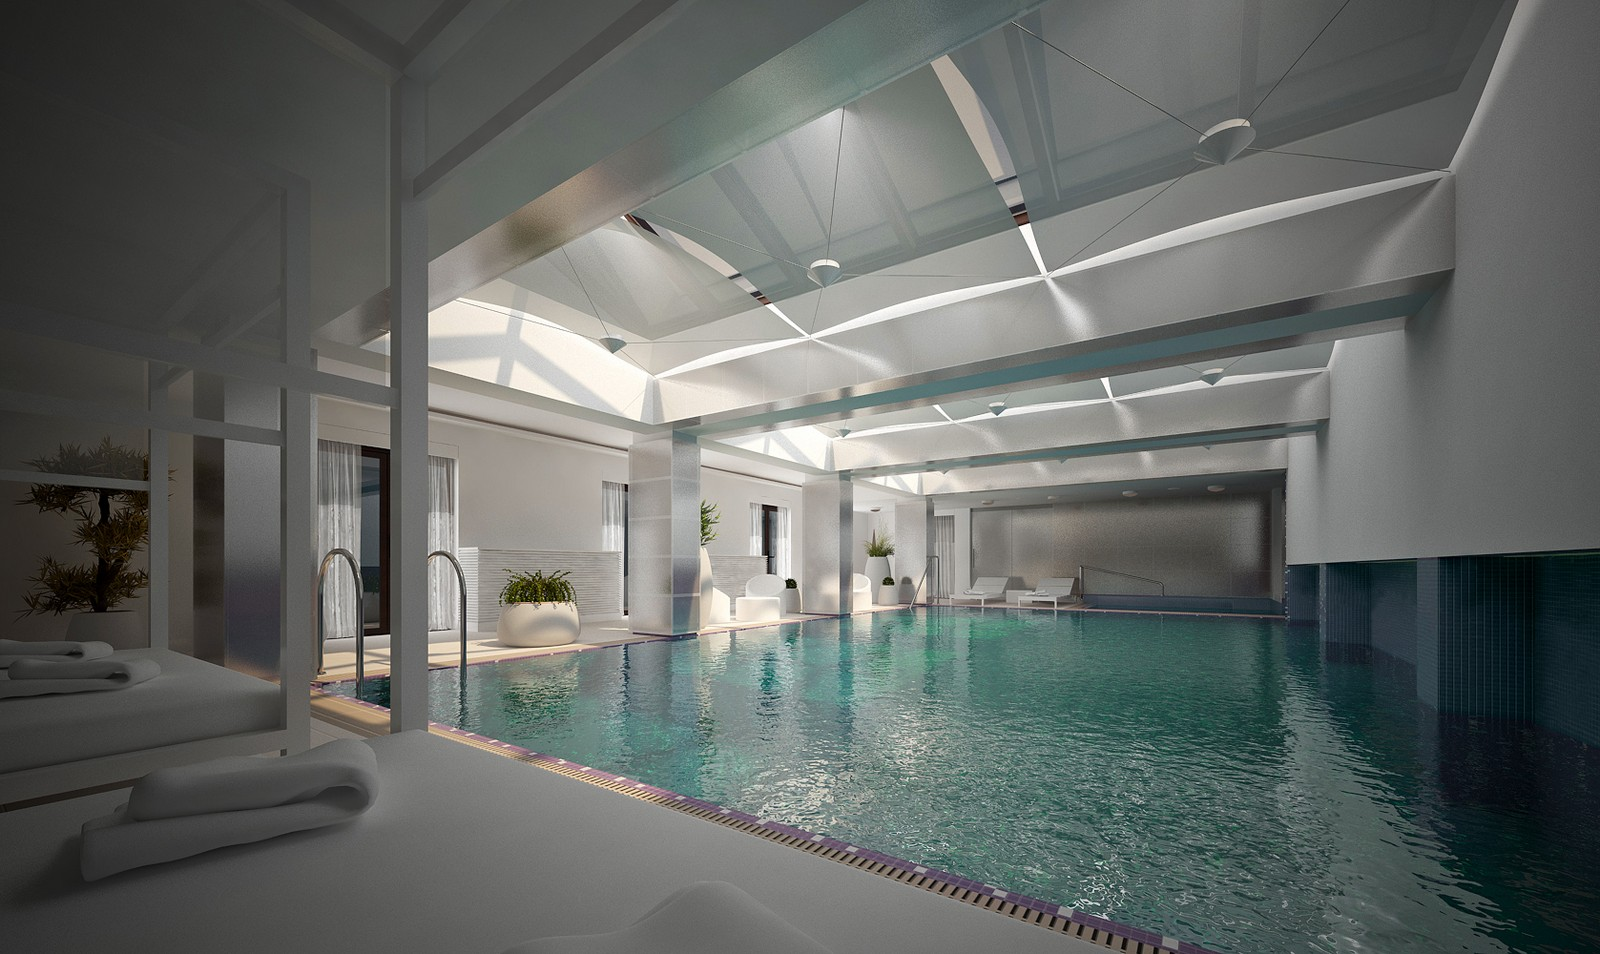 Indoor private swimming pool createlier for Private swimming pool